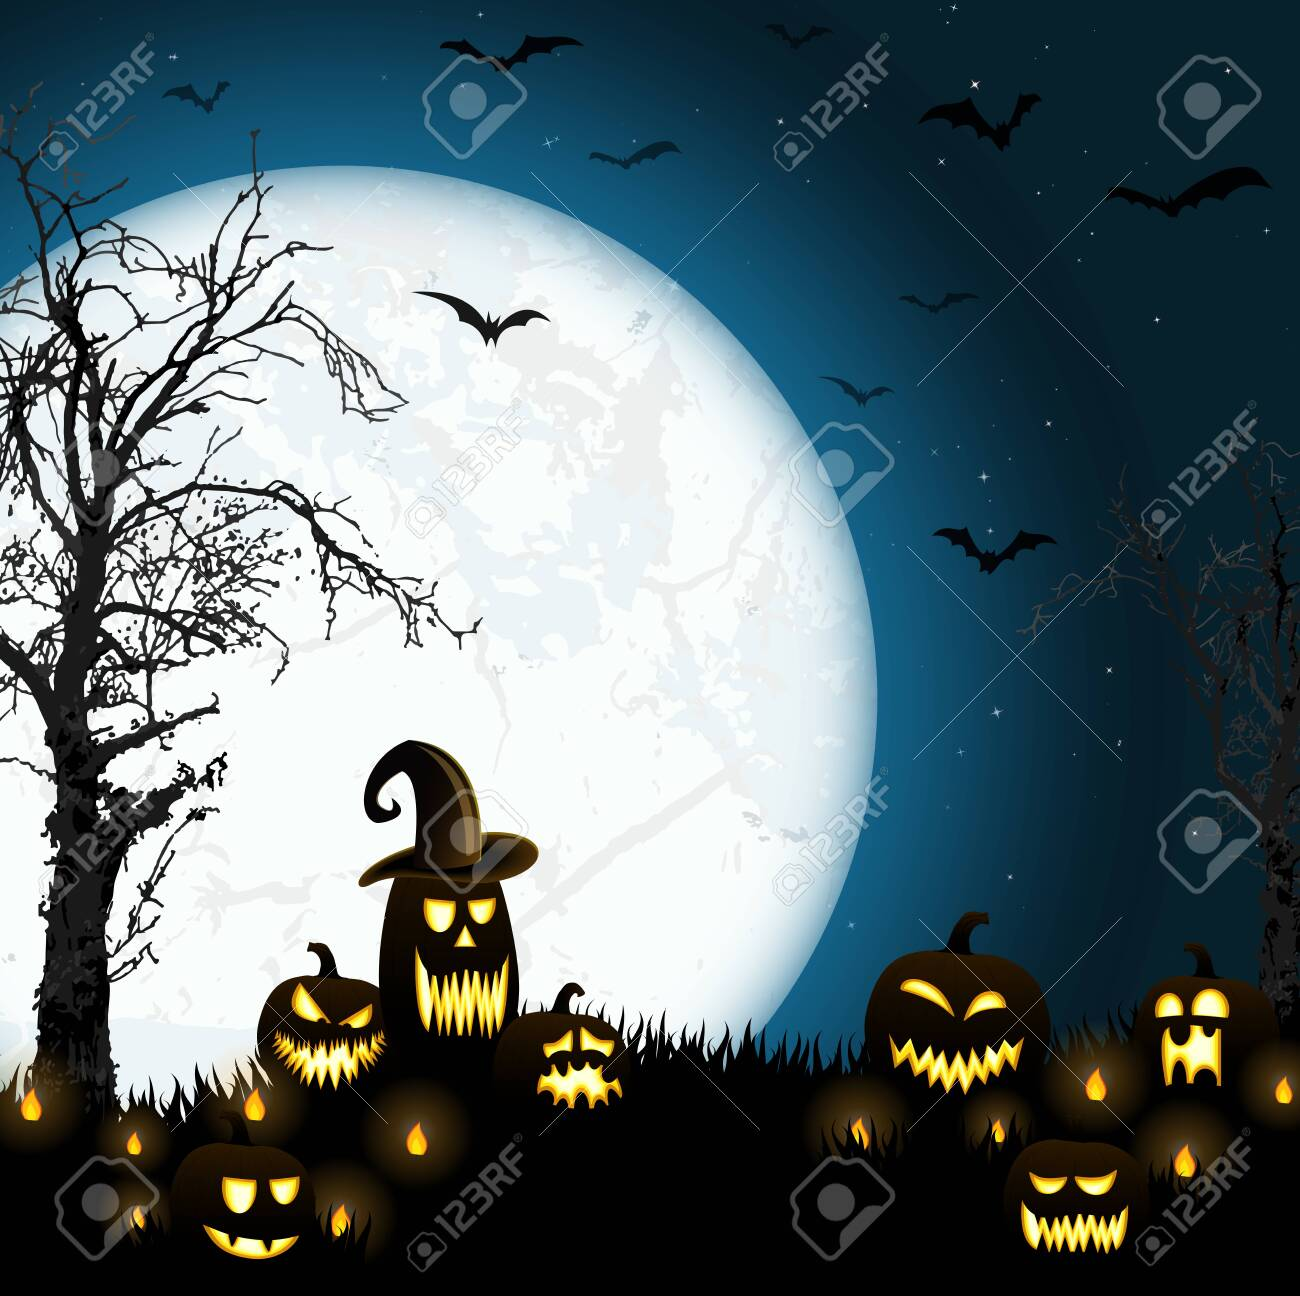 spooky halloween dead tree with some scary pumpkins in front of an full moon with bats - 157967238